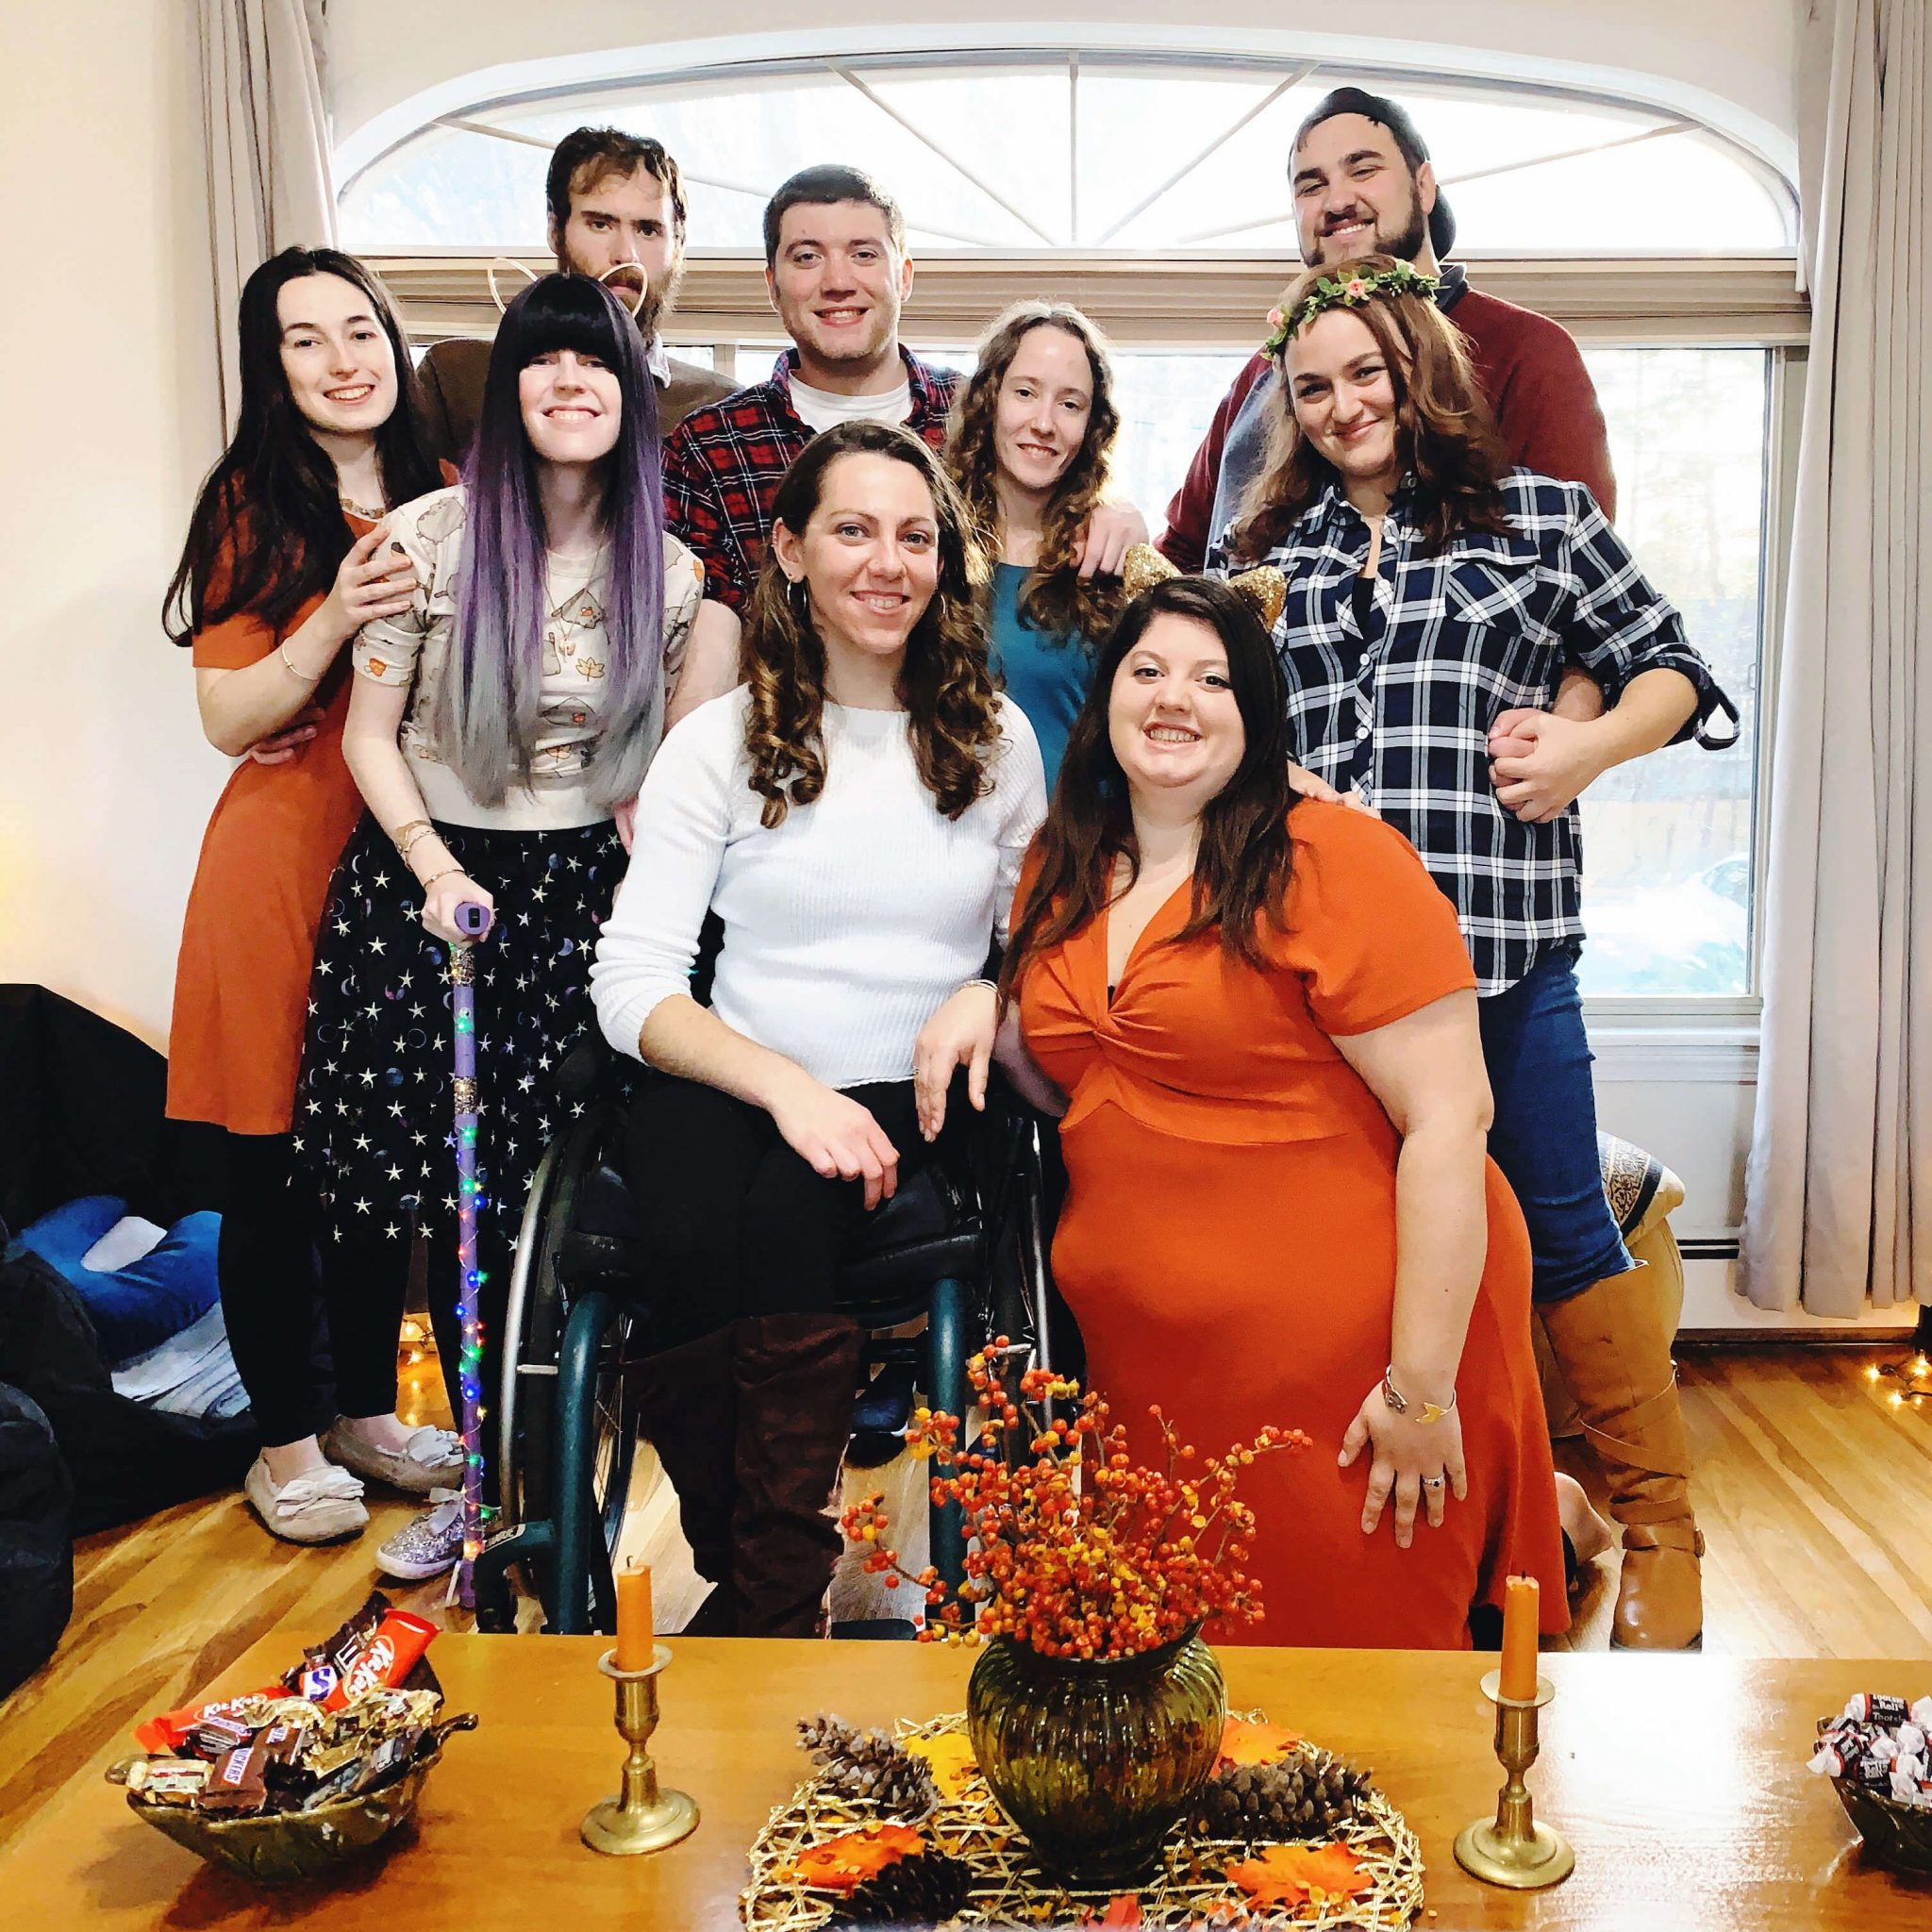 The writer is posing with her group of friends for Friendsgiving inside a home with a large window behind everyone. In front, there is a small table with centerpieces and fall-inspired decor, including orange candlesticks. Several people are wearing fall attire, including two orange dresses, a few flannel shirts, a flower crown, a fall sweater with leaves on it, and a purple walking cane decorated with rainbow holiday lights. Everyone is smiling.